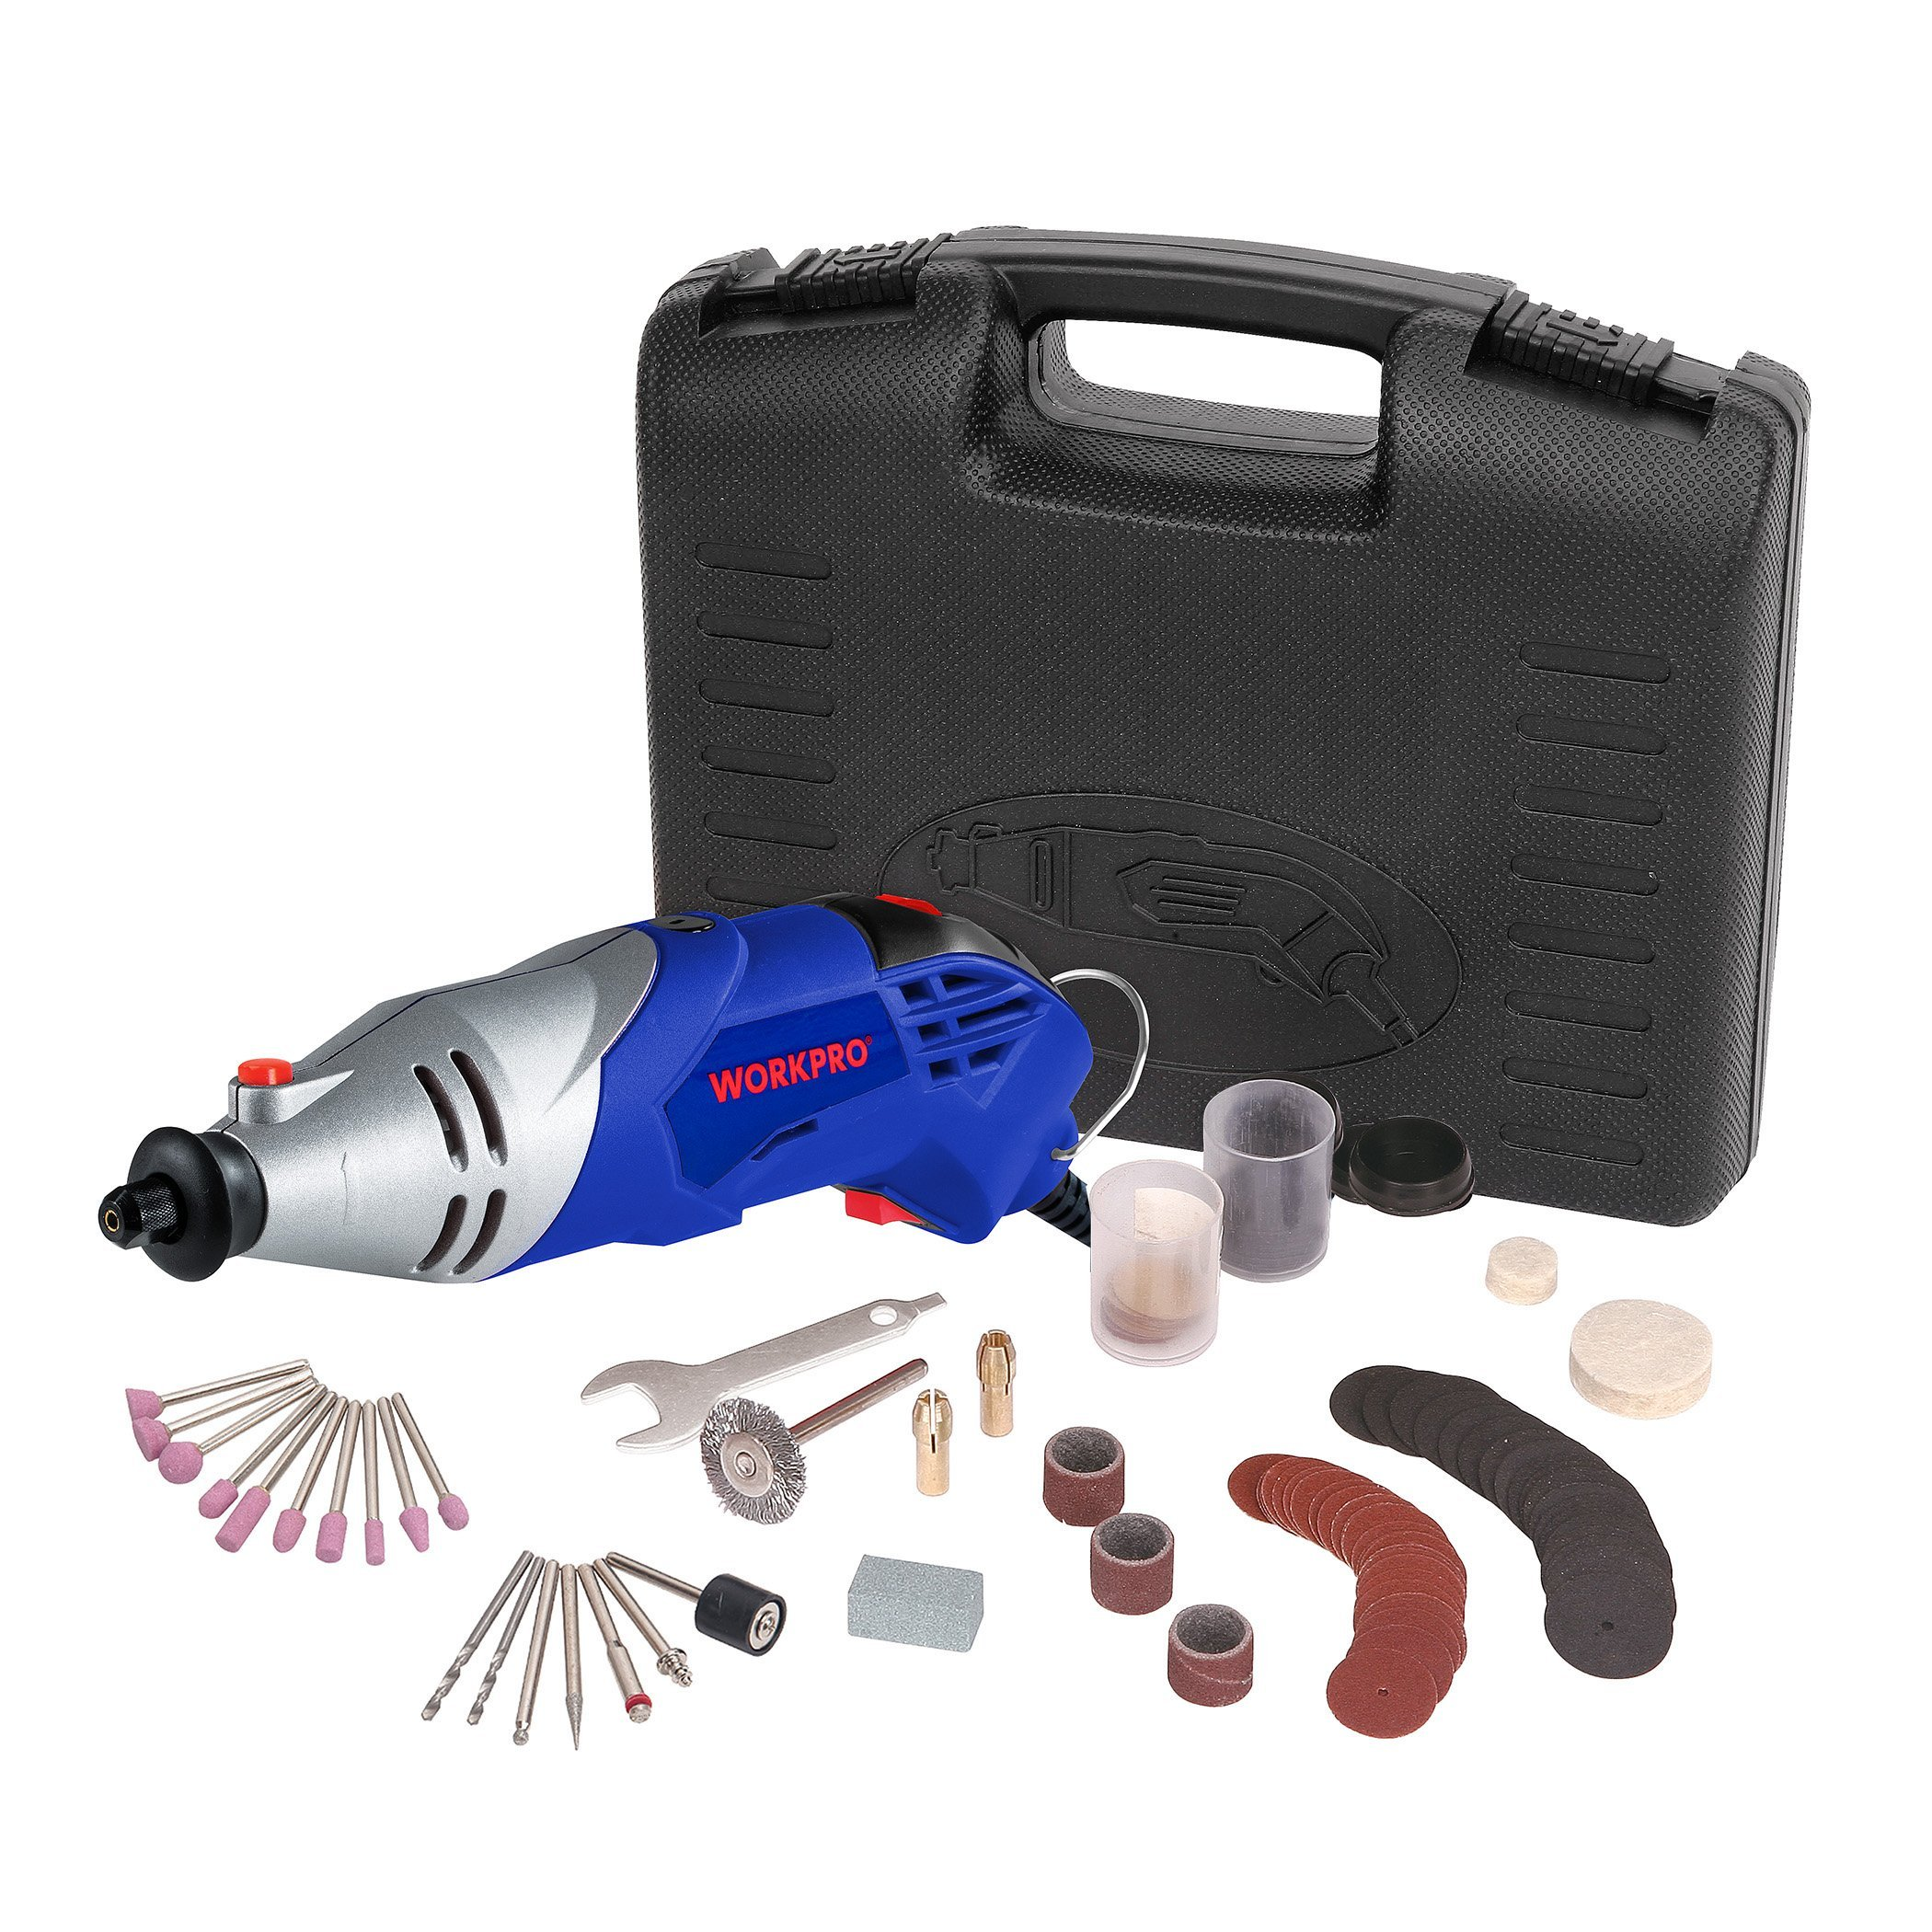 WORKPRO Rotary Tool Kit Variable Speed with 104-Piece Accessories Universal Fitment for Easy Cutting, Carving and Polishing